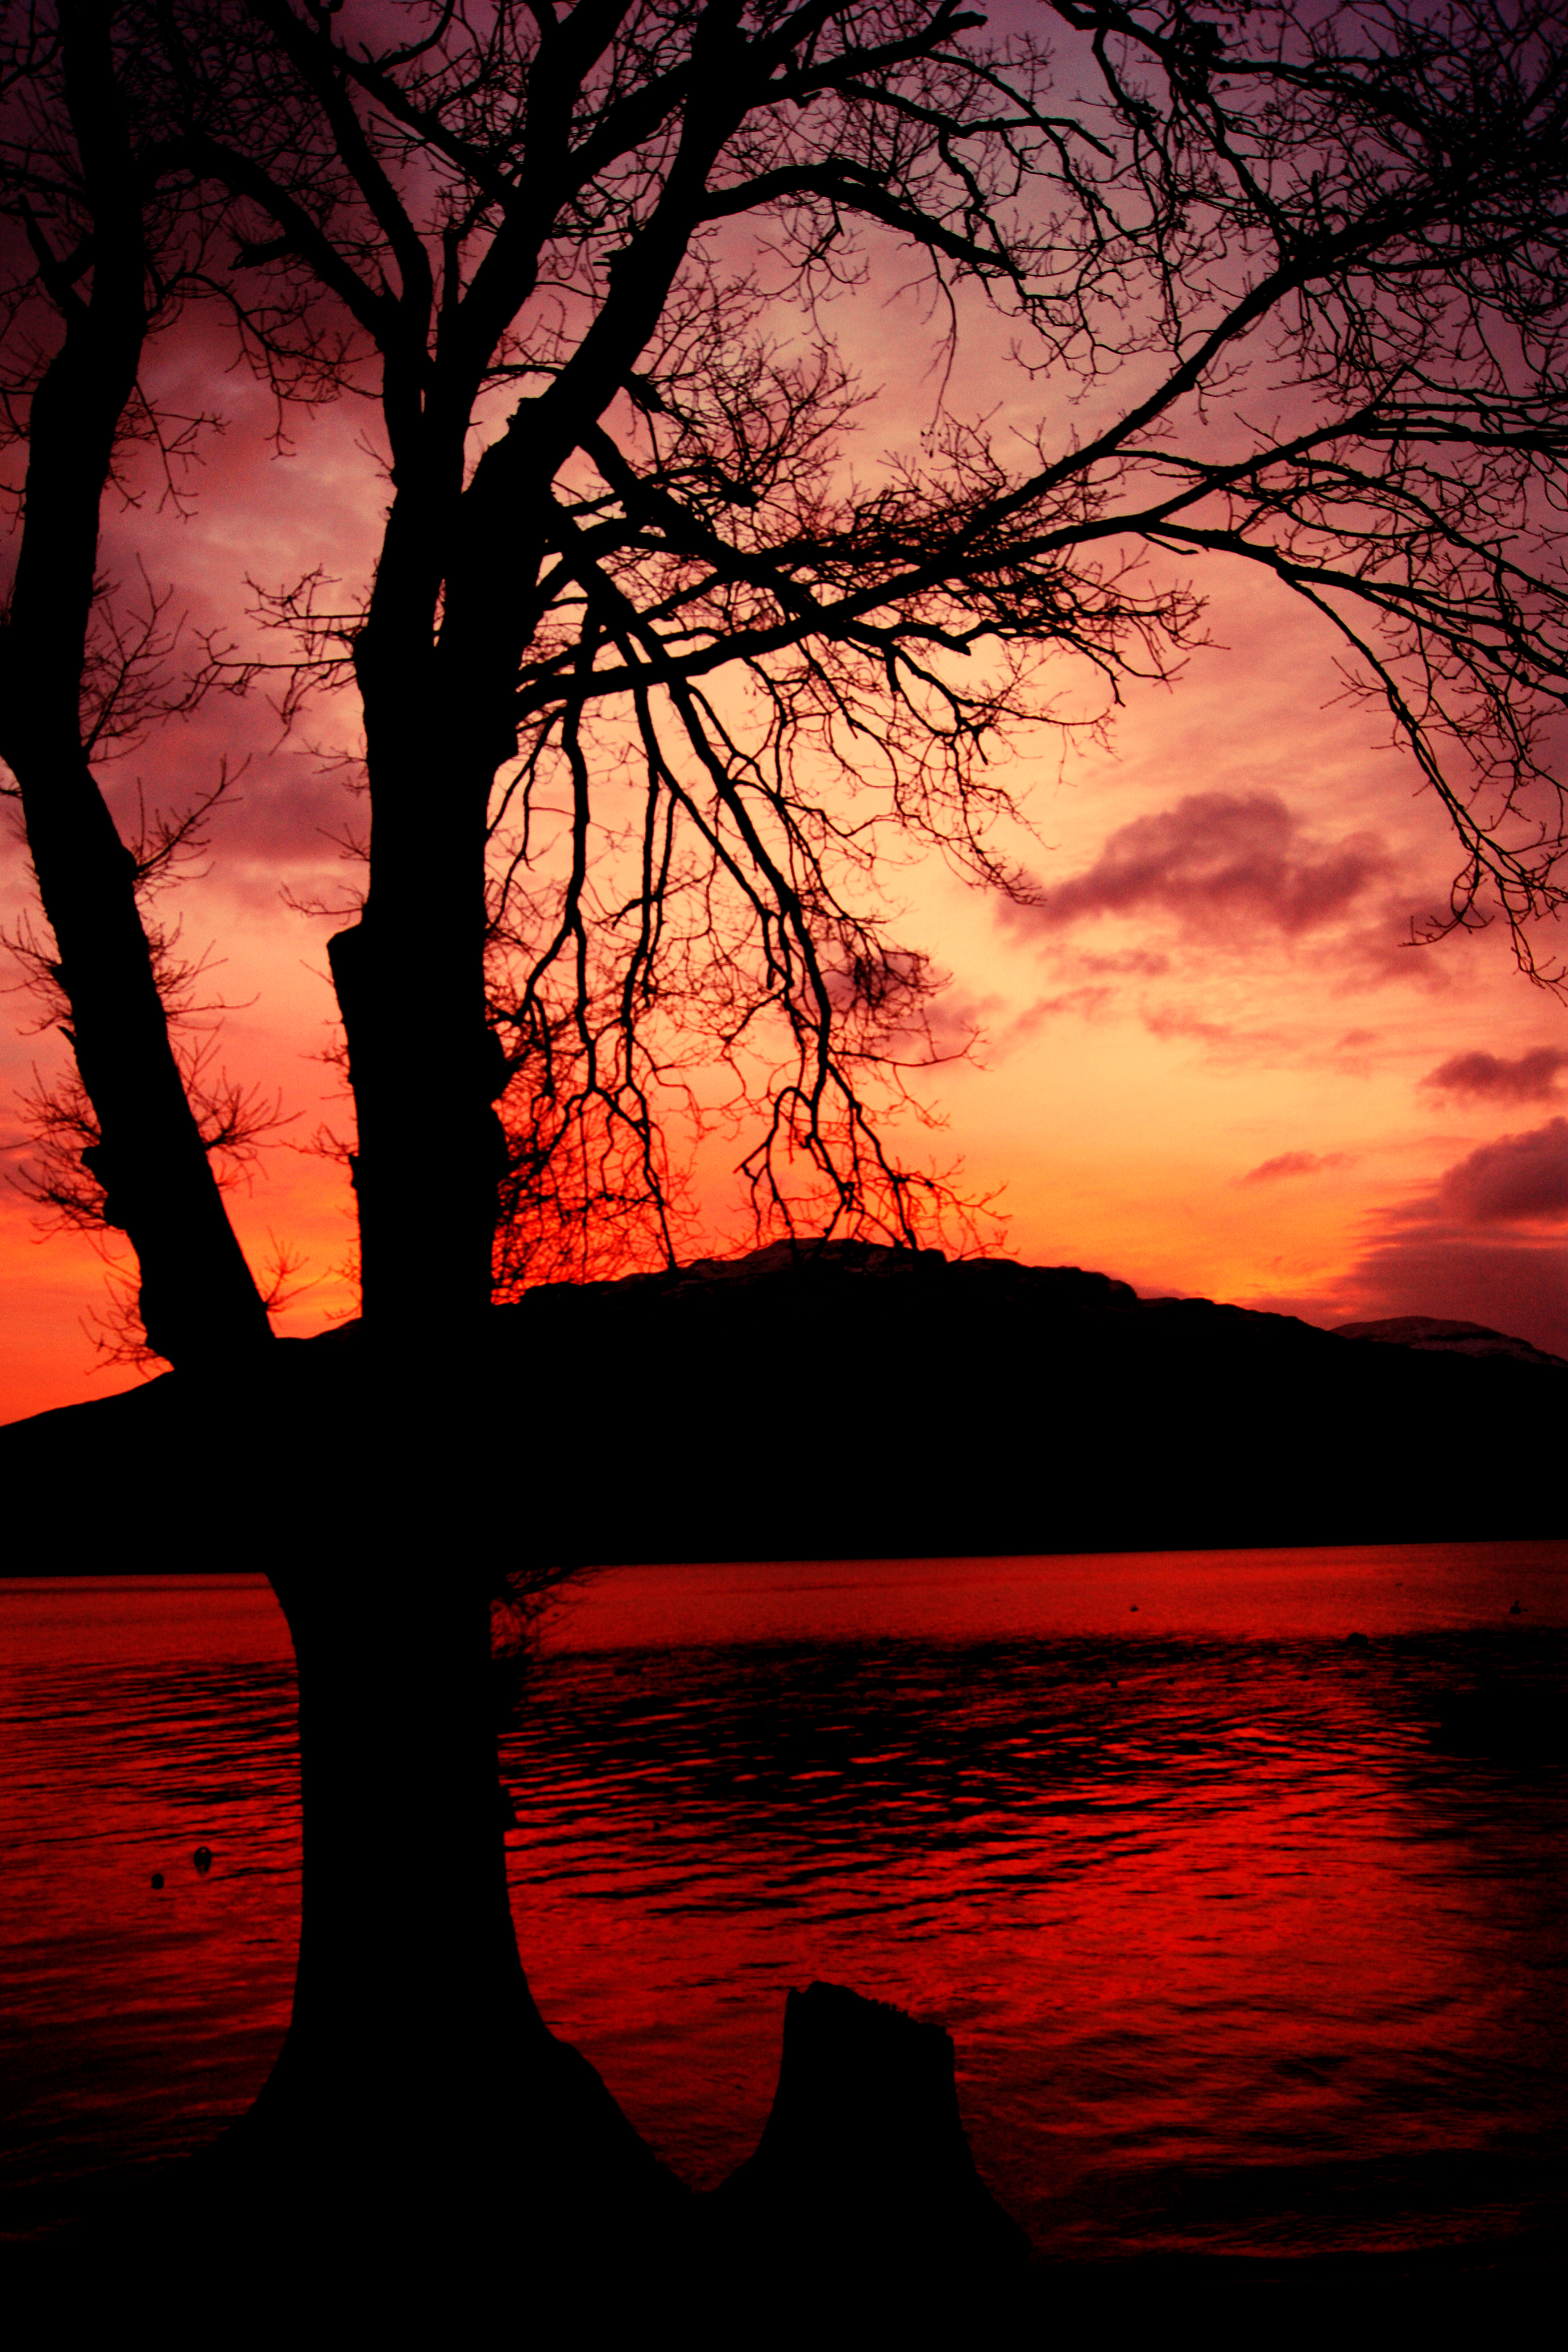 Sunset Tree - Loch Lomond